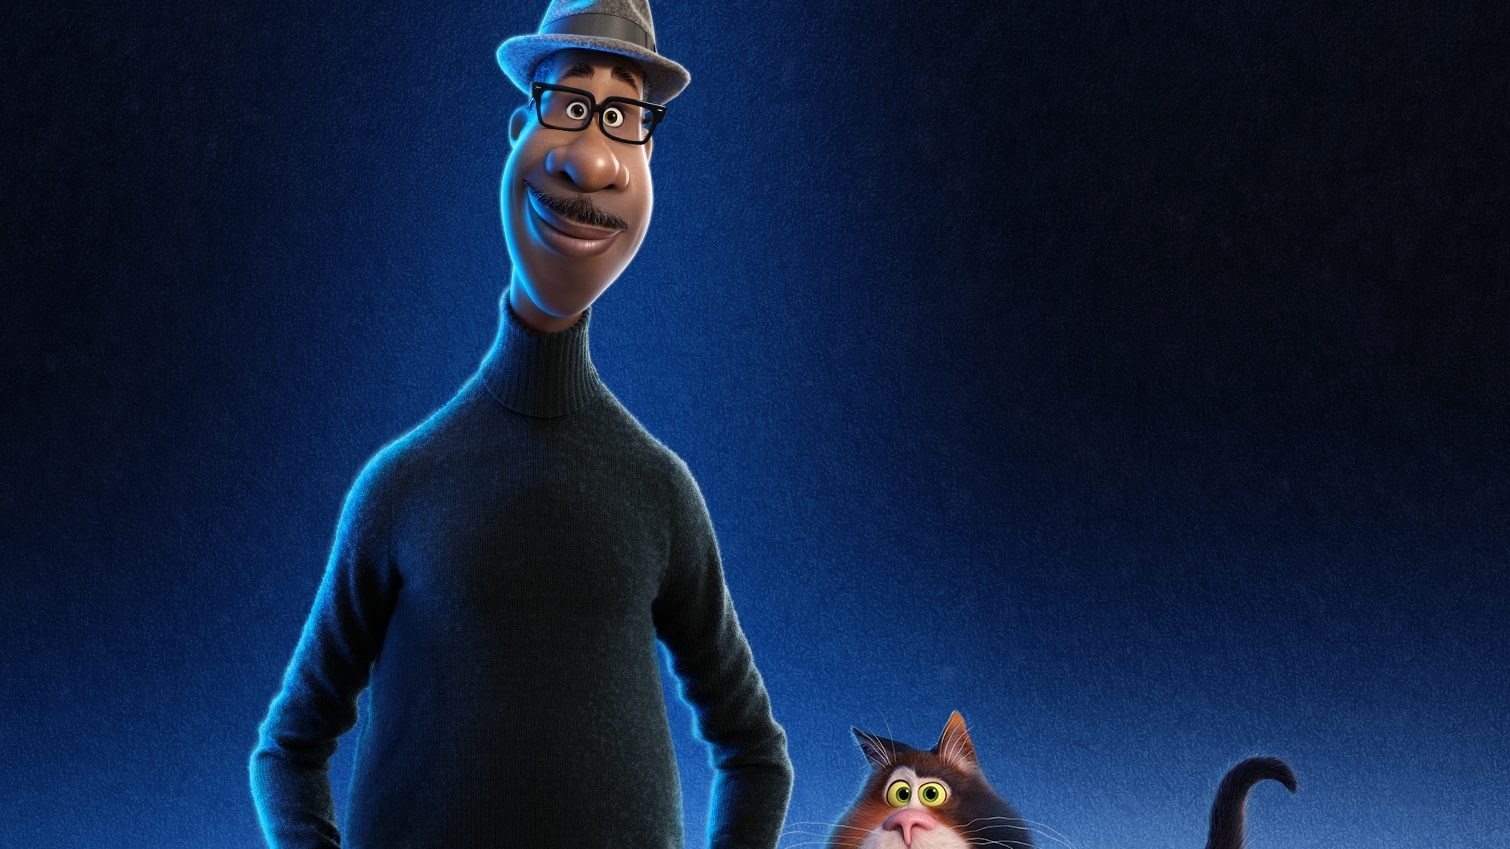 disney pixar film Soul